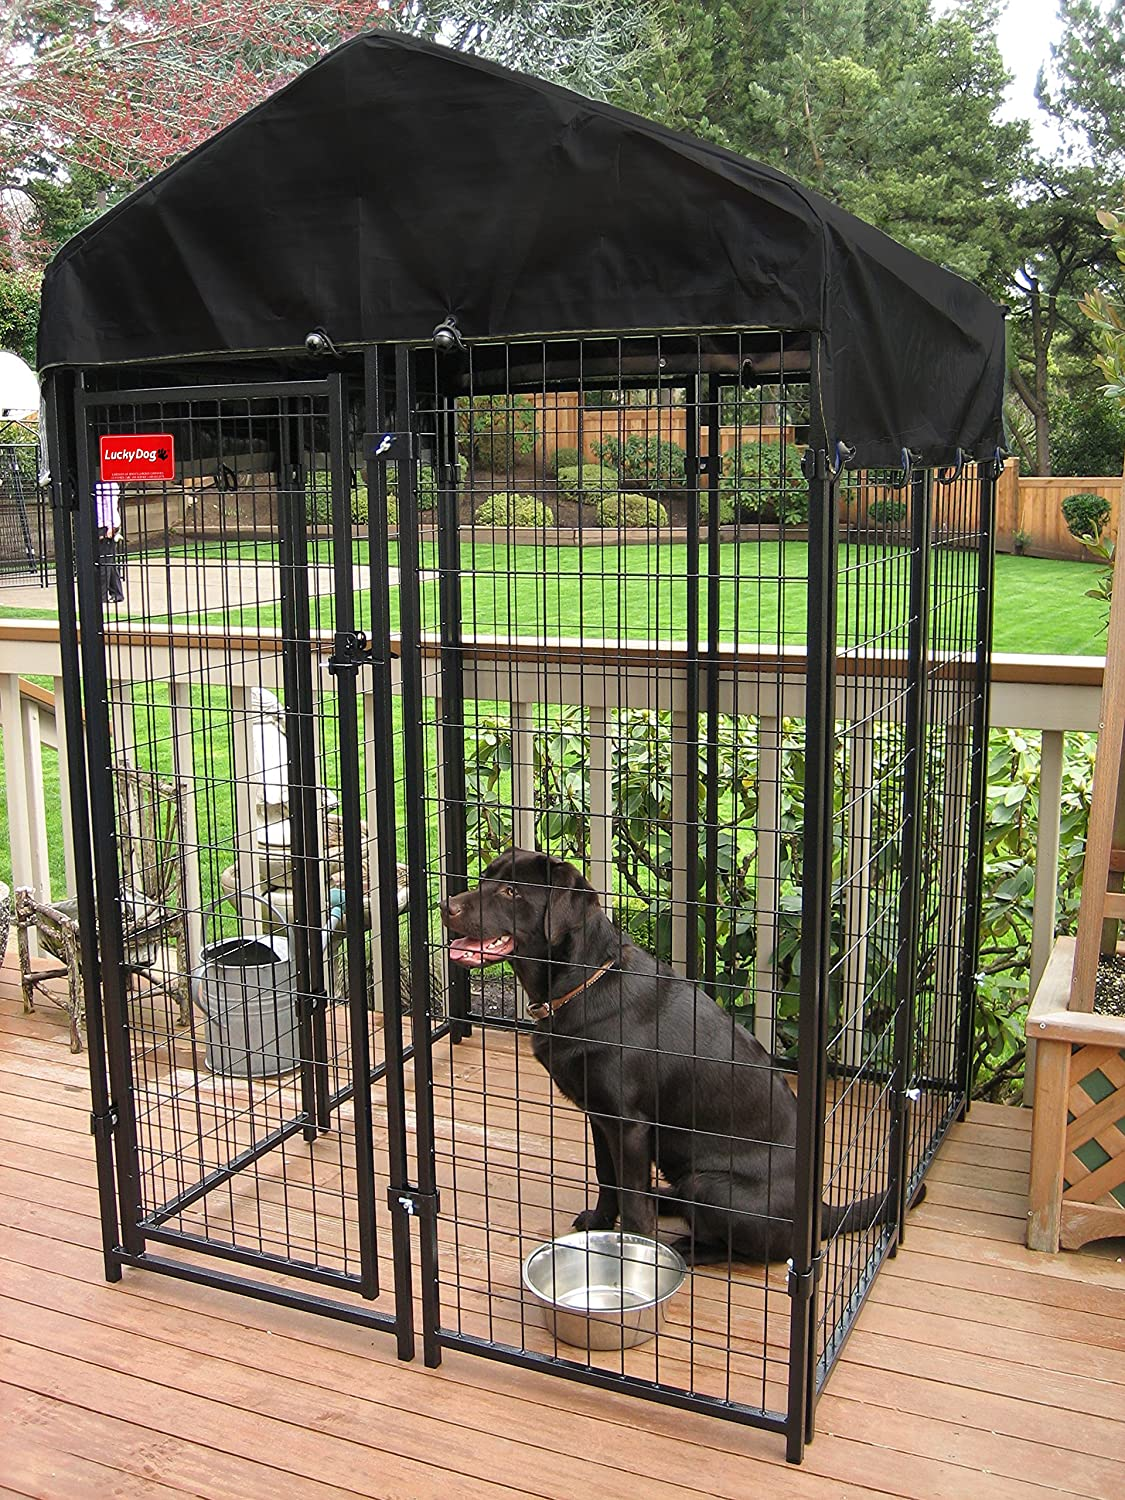 amazoncom heavy duty dog cage lucky dog outdoor pet playpen this pet cage is perfect for containing small dogs and animals